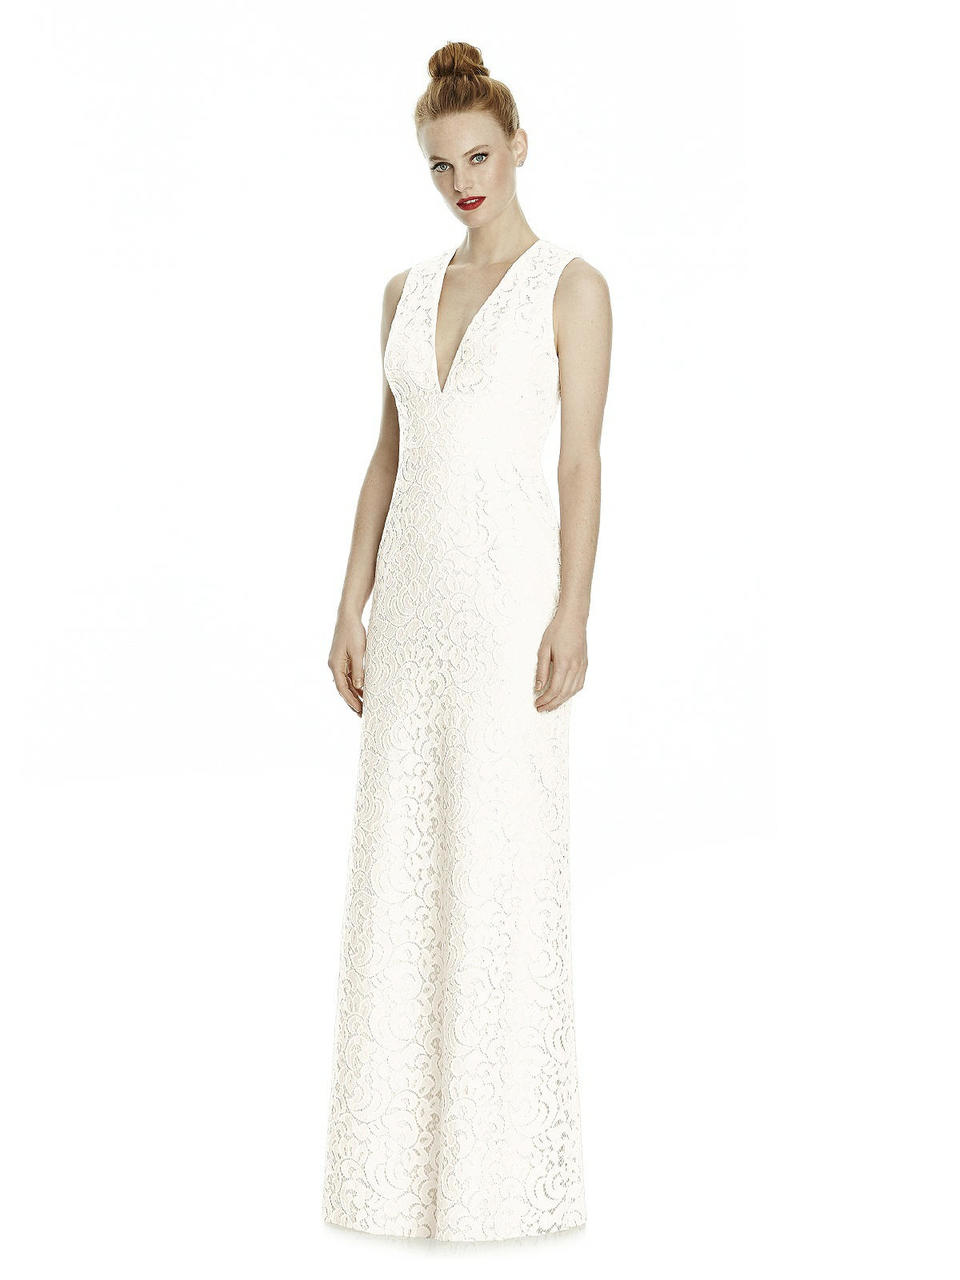 Full length sleeveless gabriella lace dress w/ deep v-neckline and triangle cut out back. Ivory or blush lace over any color matte lining. A-line skirt.